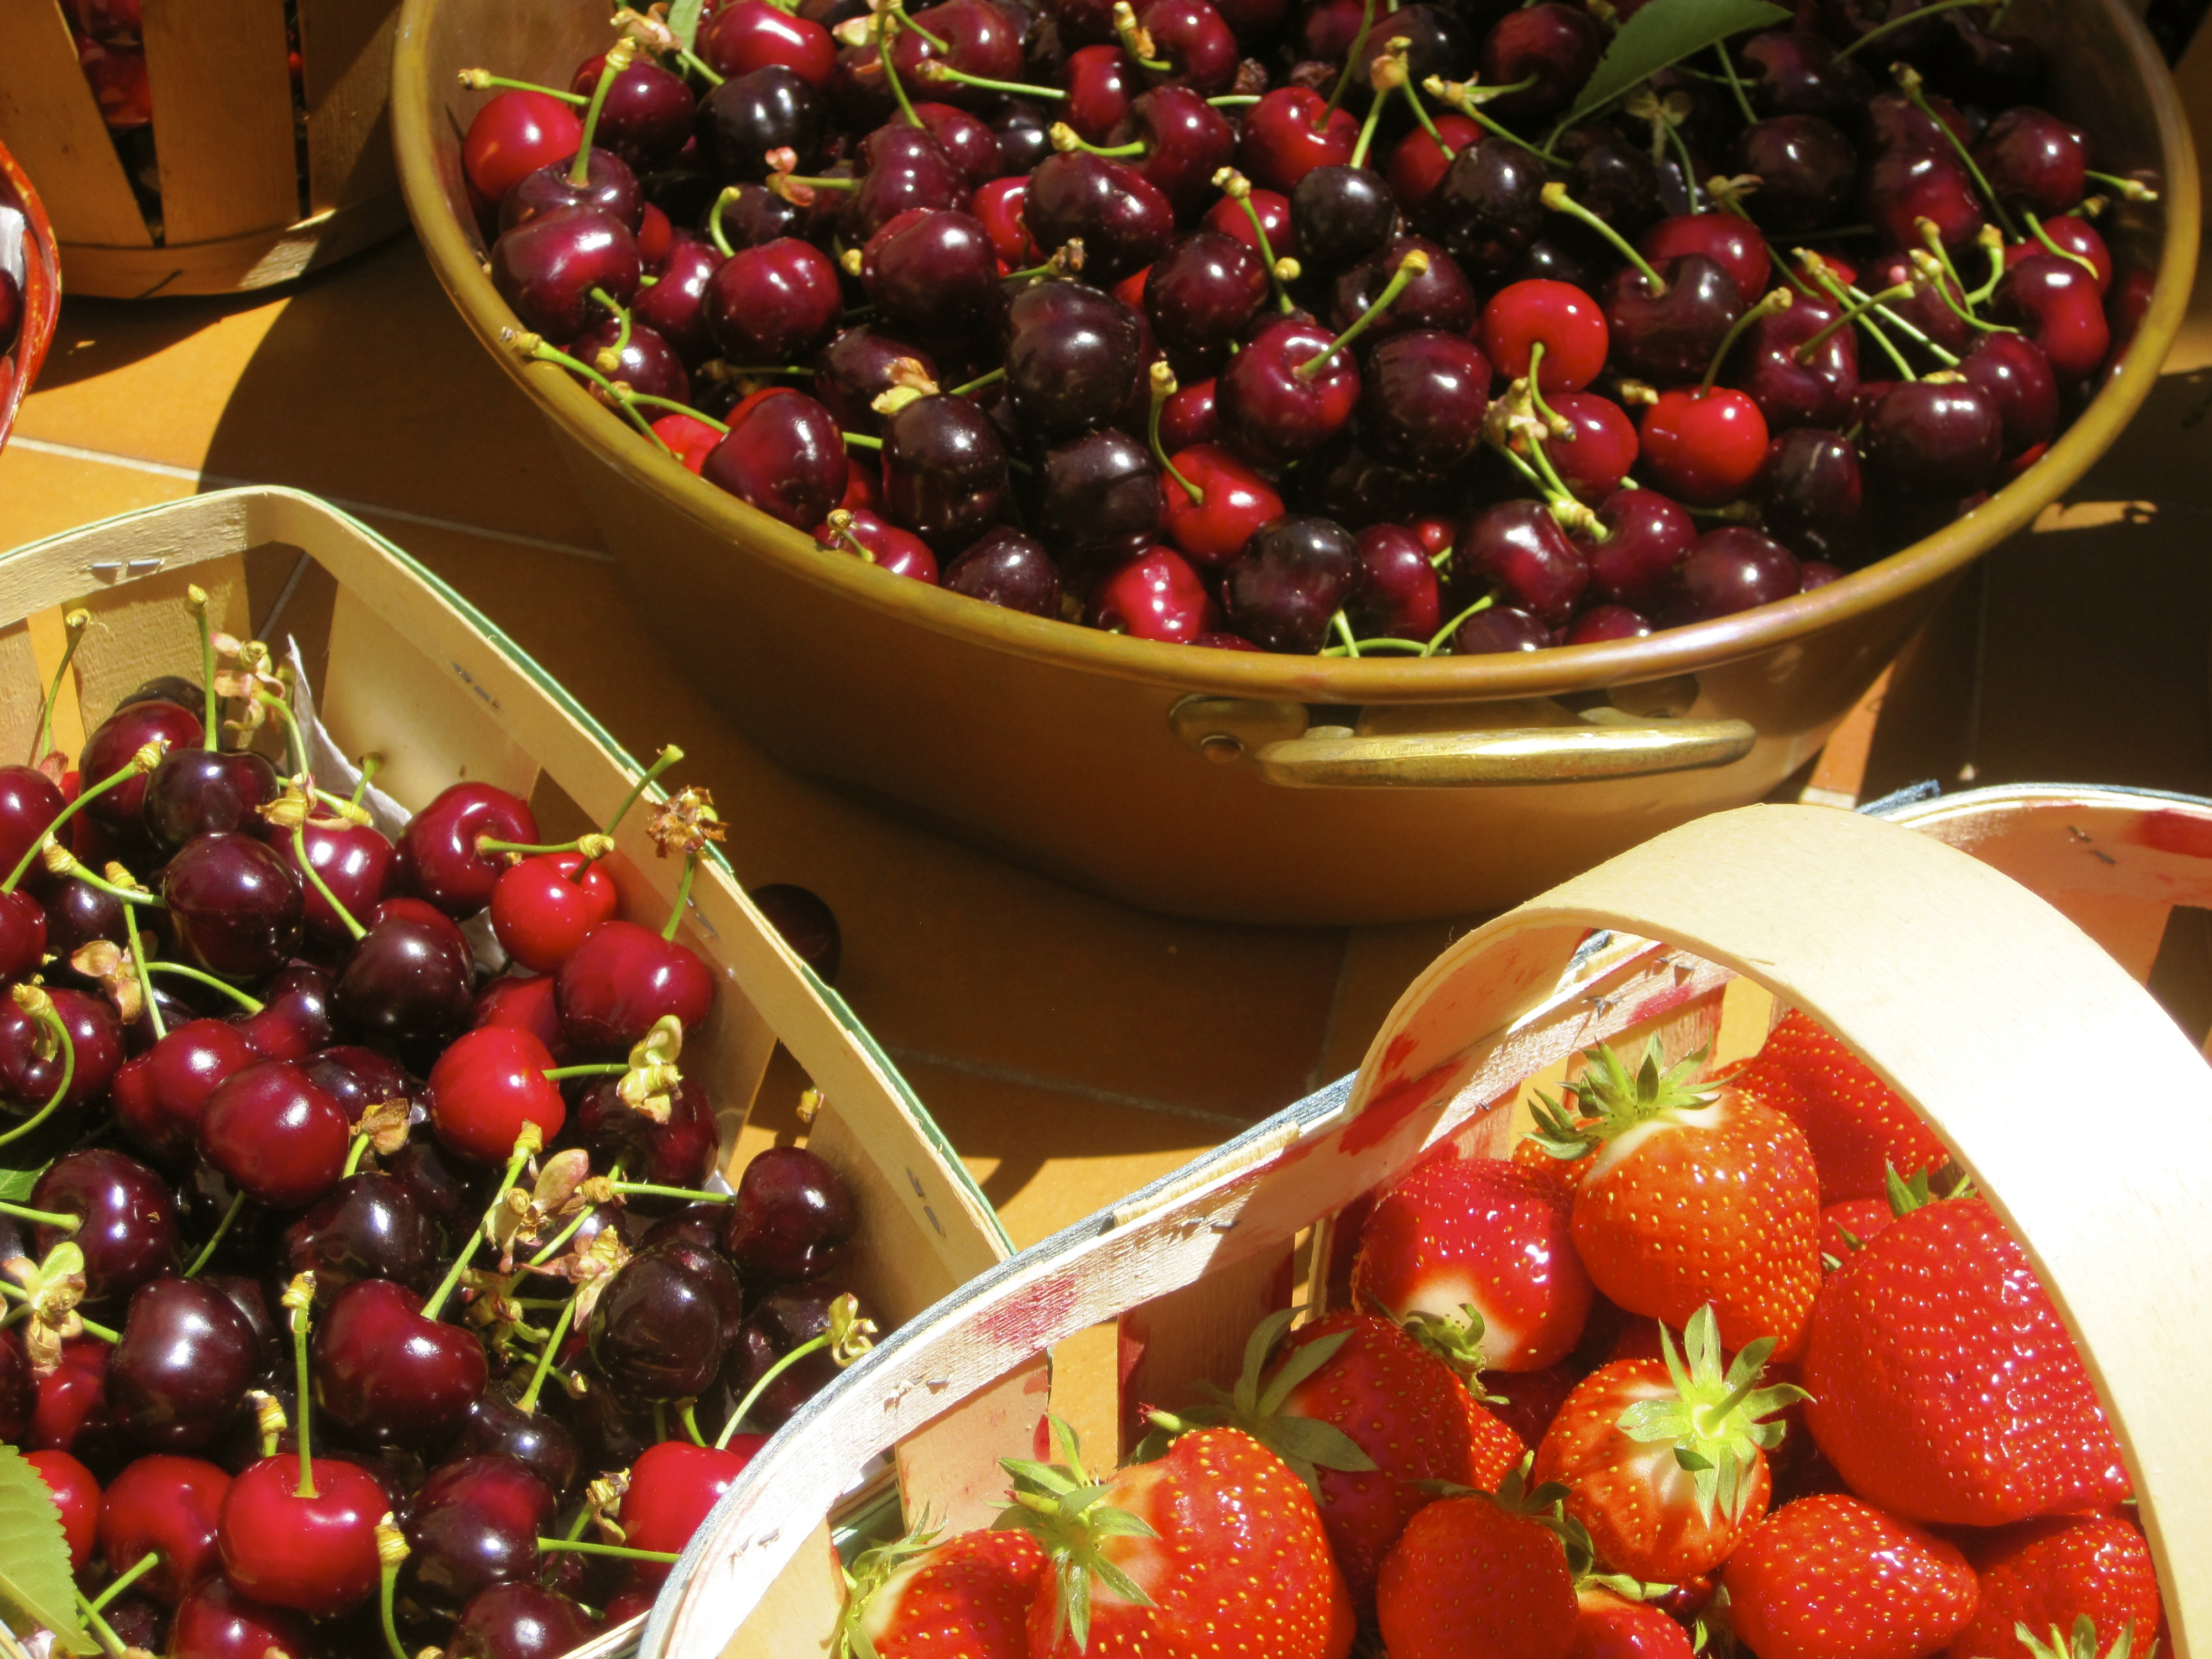 south of France, cherries, fruit